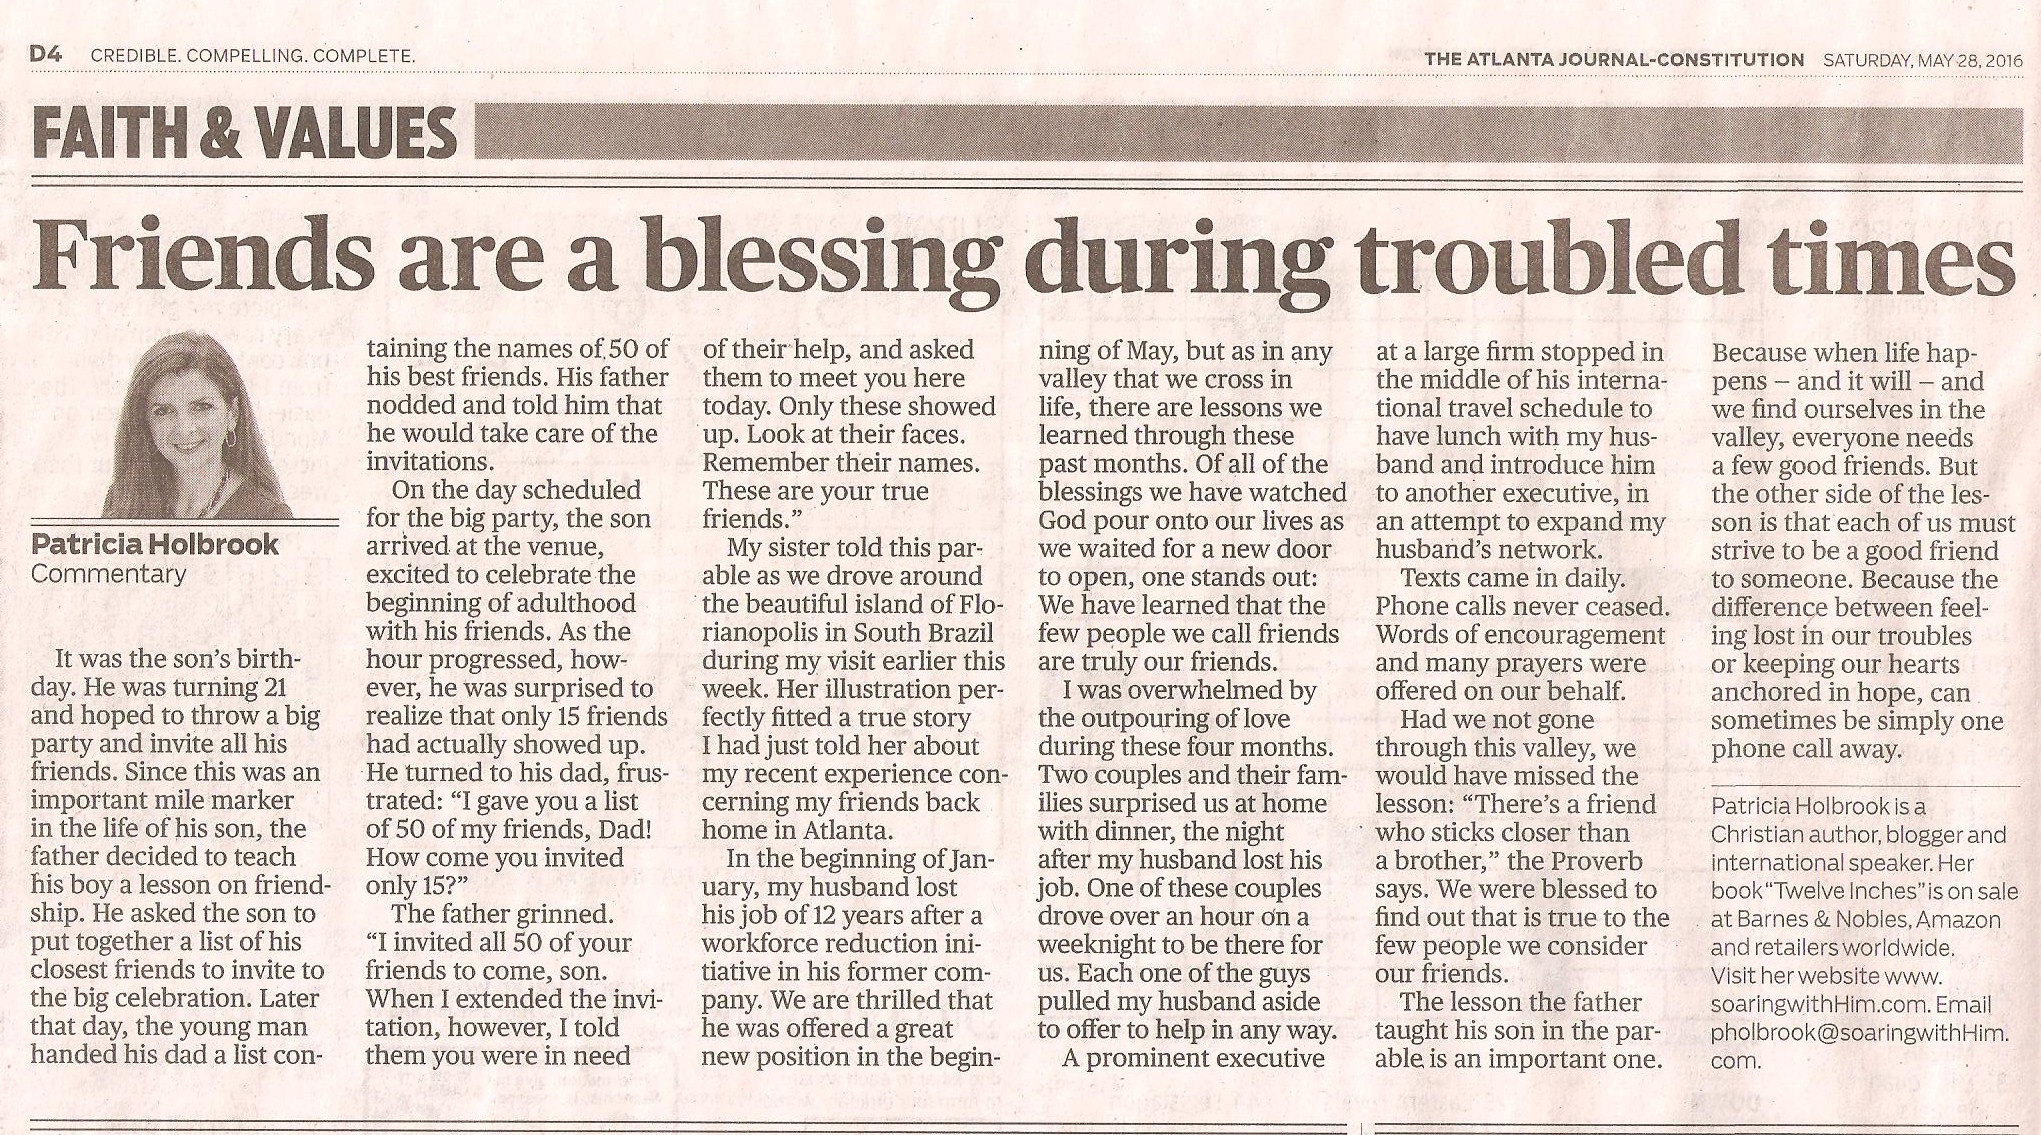 AJC - 5-28-2016 Friends are blessings during trouble times